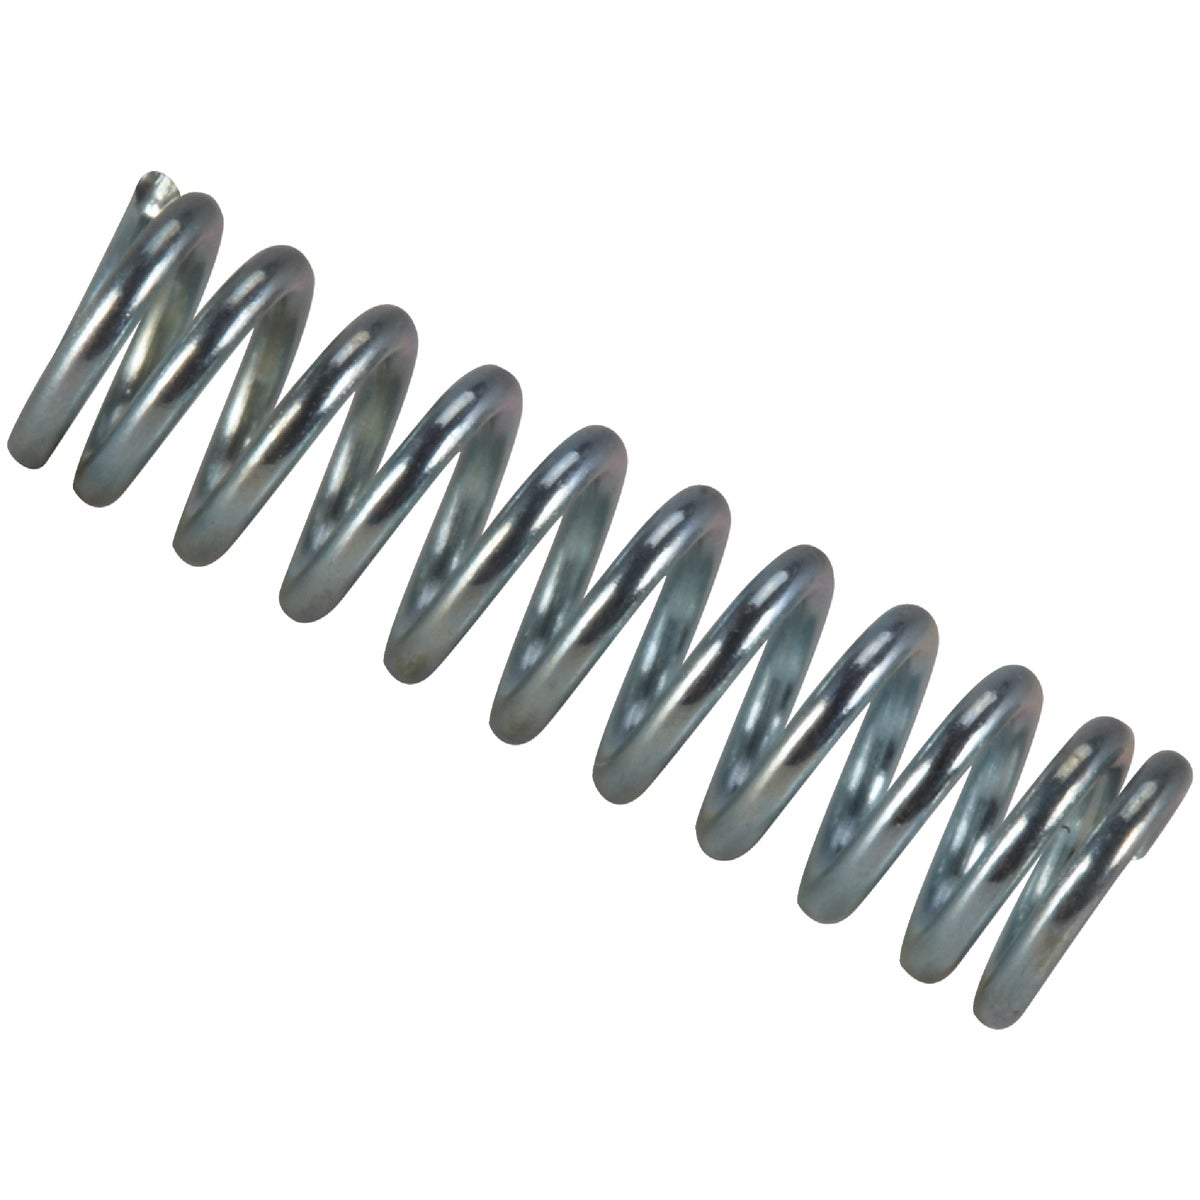 COMPRESSION SPRING - C-500 by Century Spring Corp